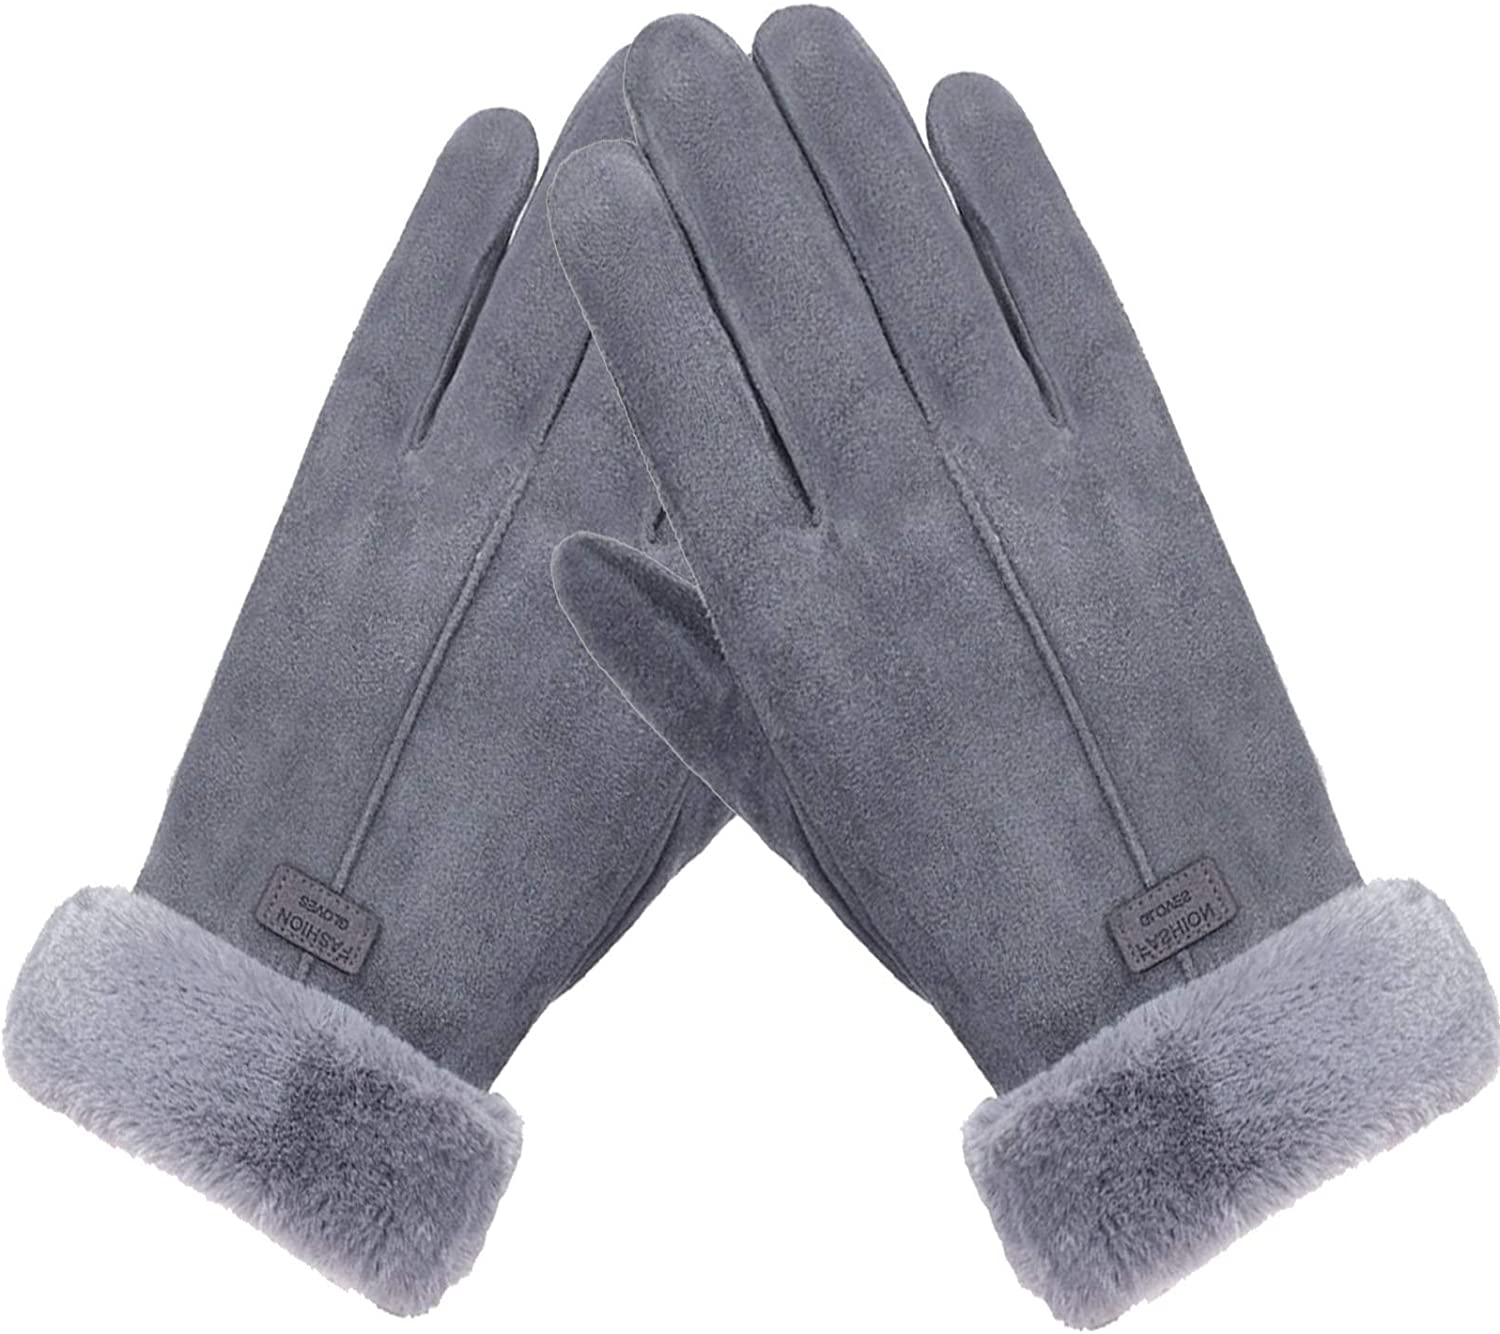 Womens Winter Gloves Touchscreen Warm Faux Chamois Suede Soft Pair